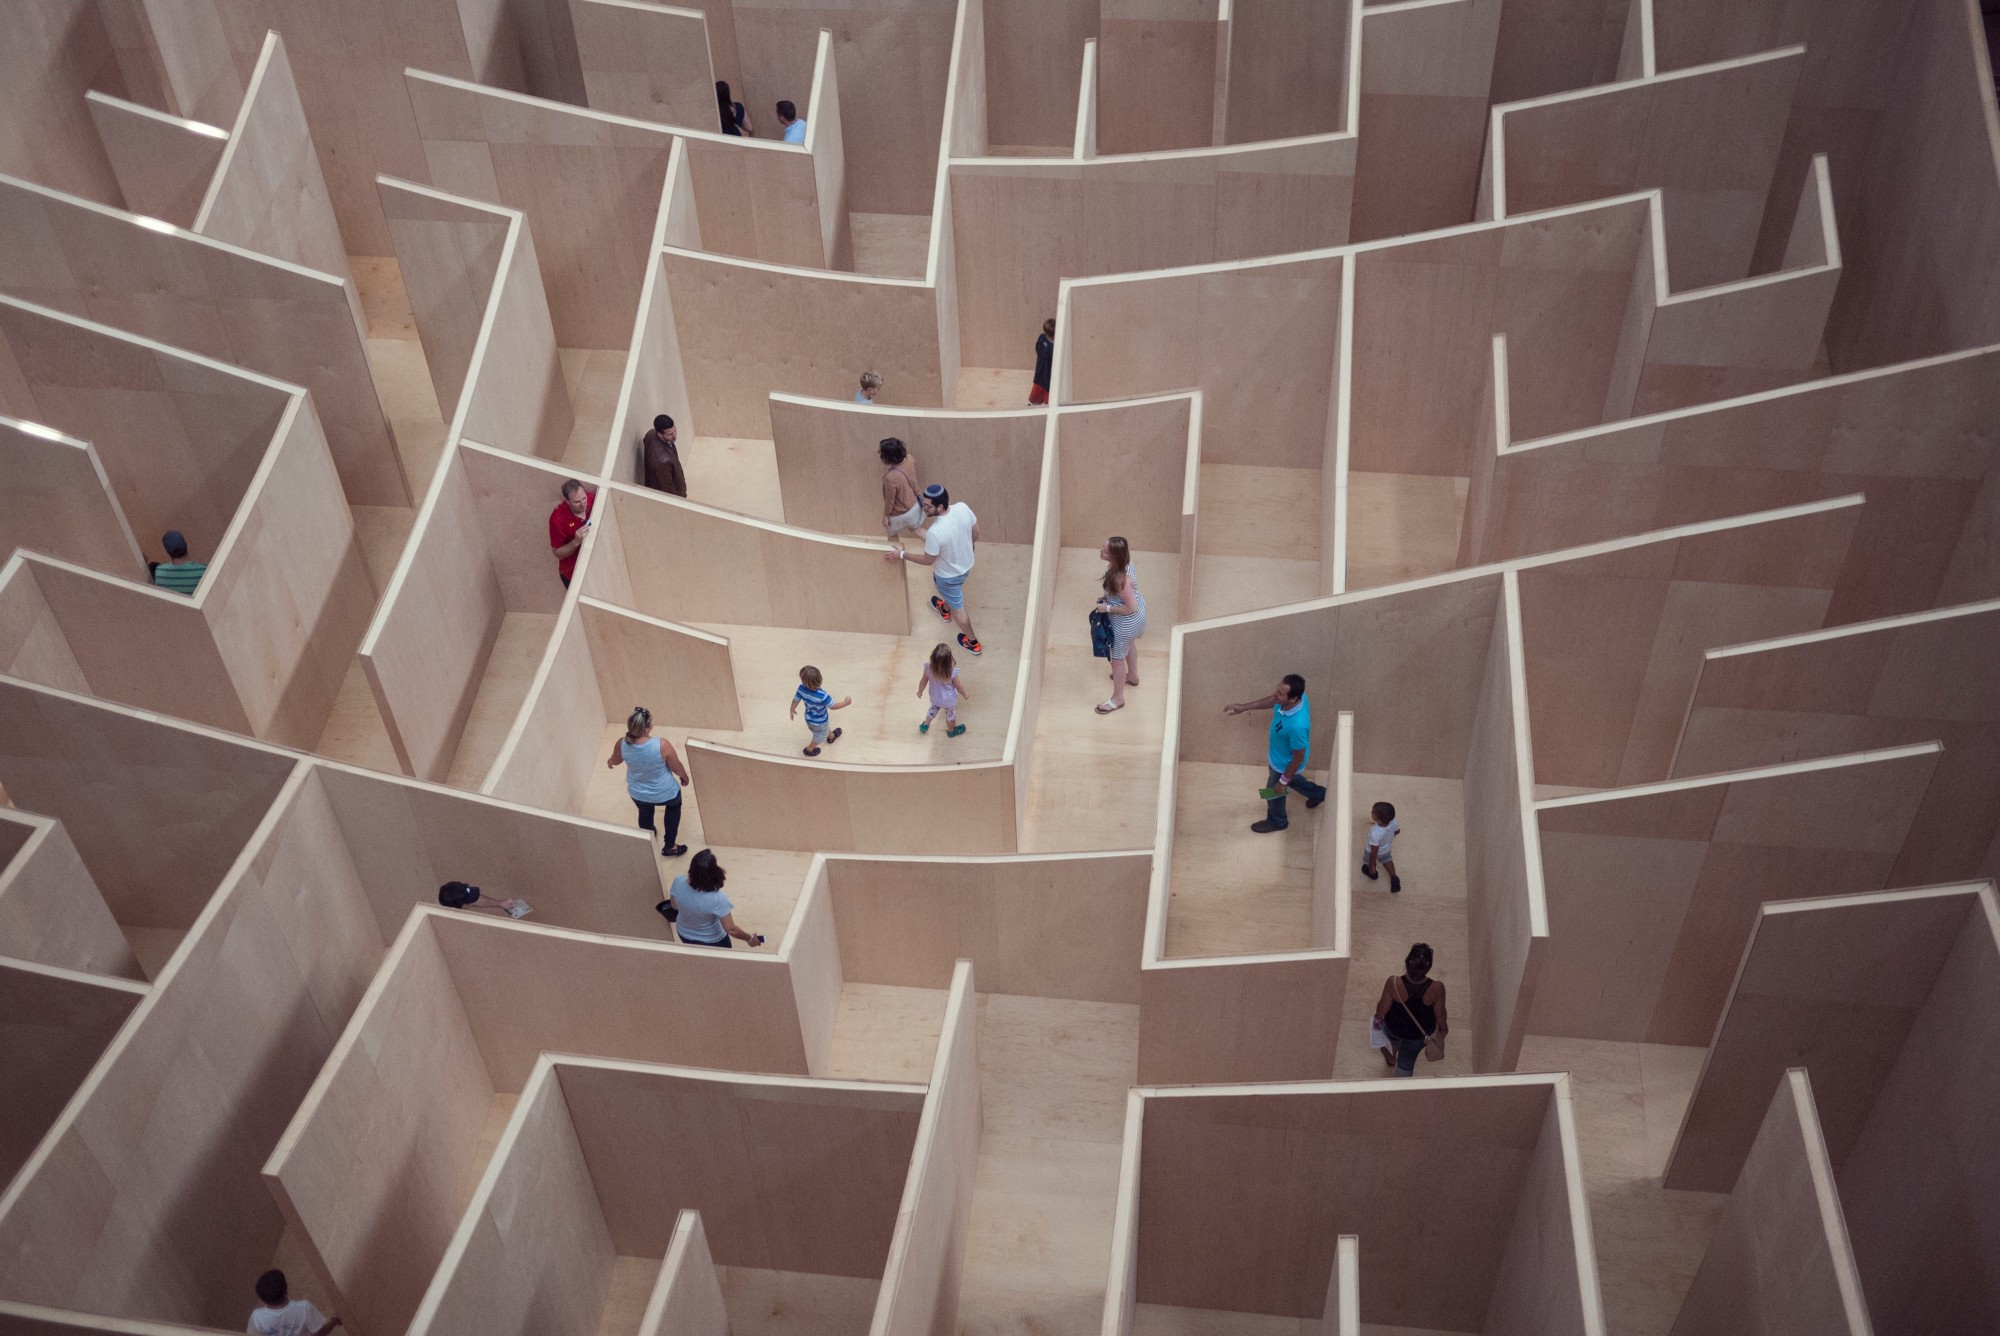 People going through a maze